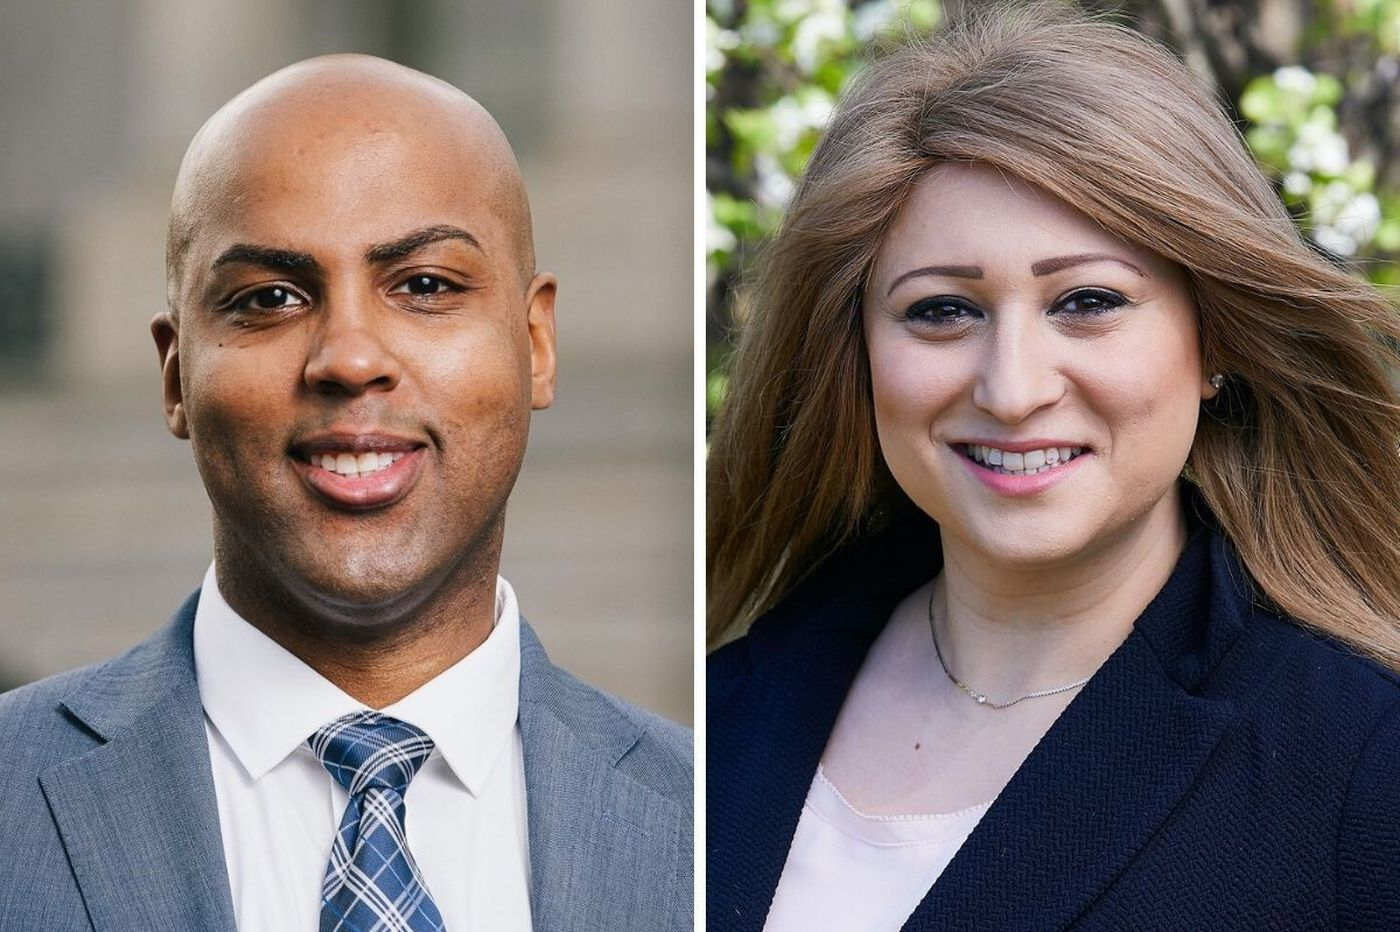 Will Cunningham and Kate Gibbs are best choices for South Jersey primary voters | Endorsement